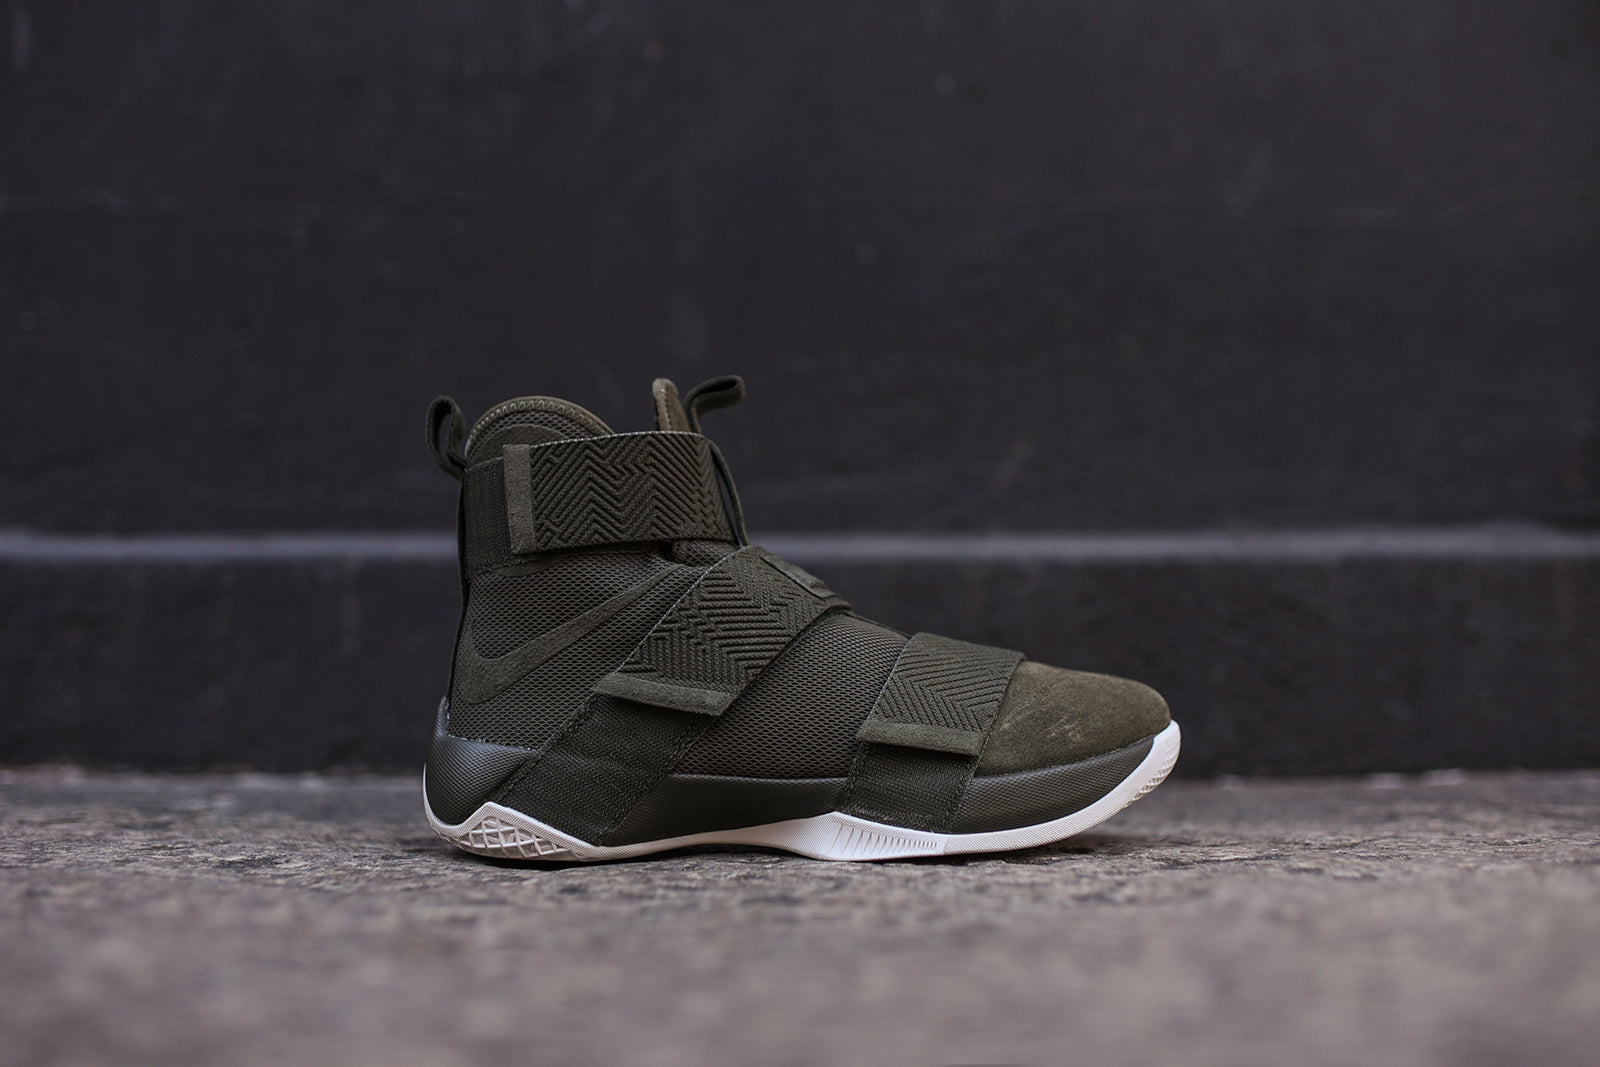 9cfc5e690eabb1 Nike LeBron Soldier X SFG LUX - Olive – Kith